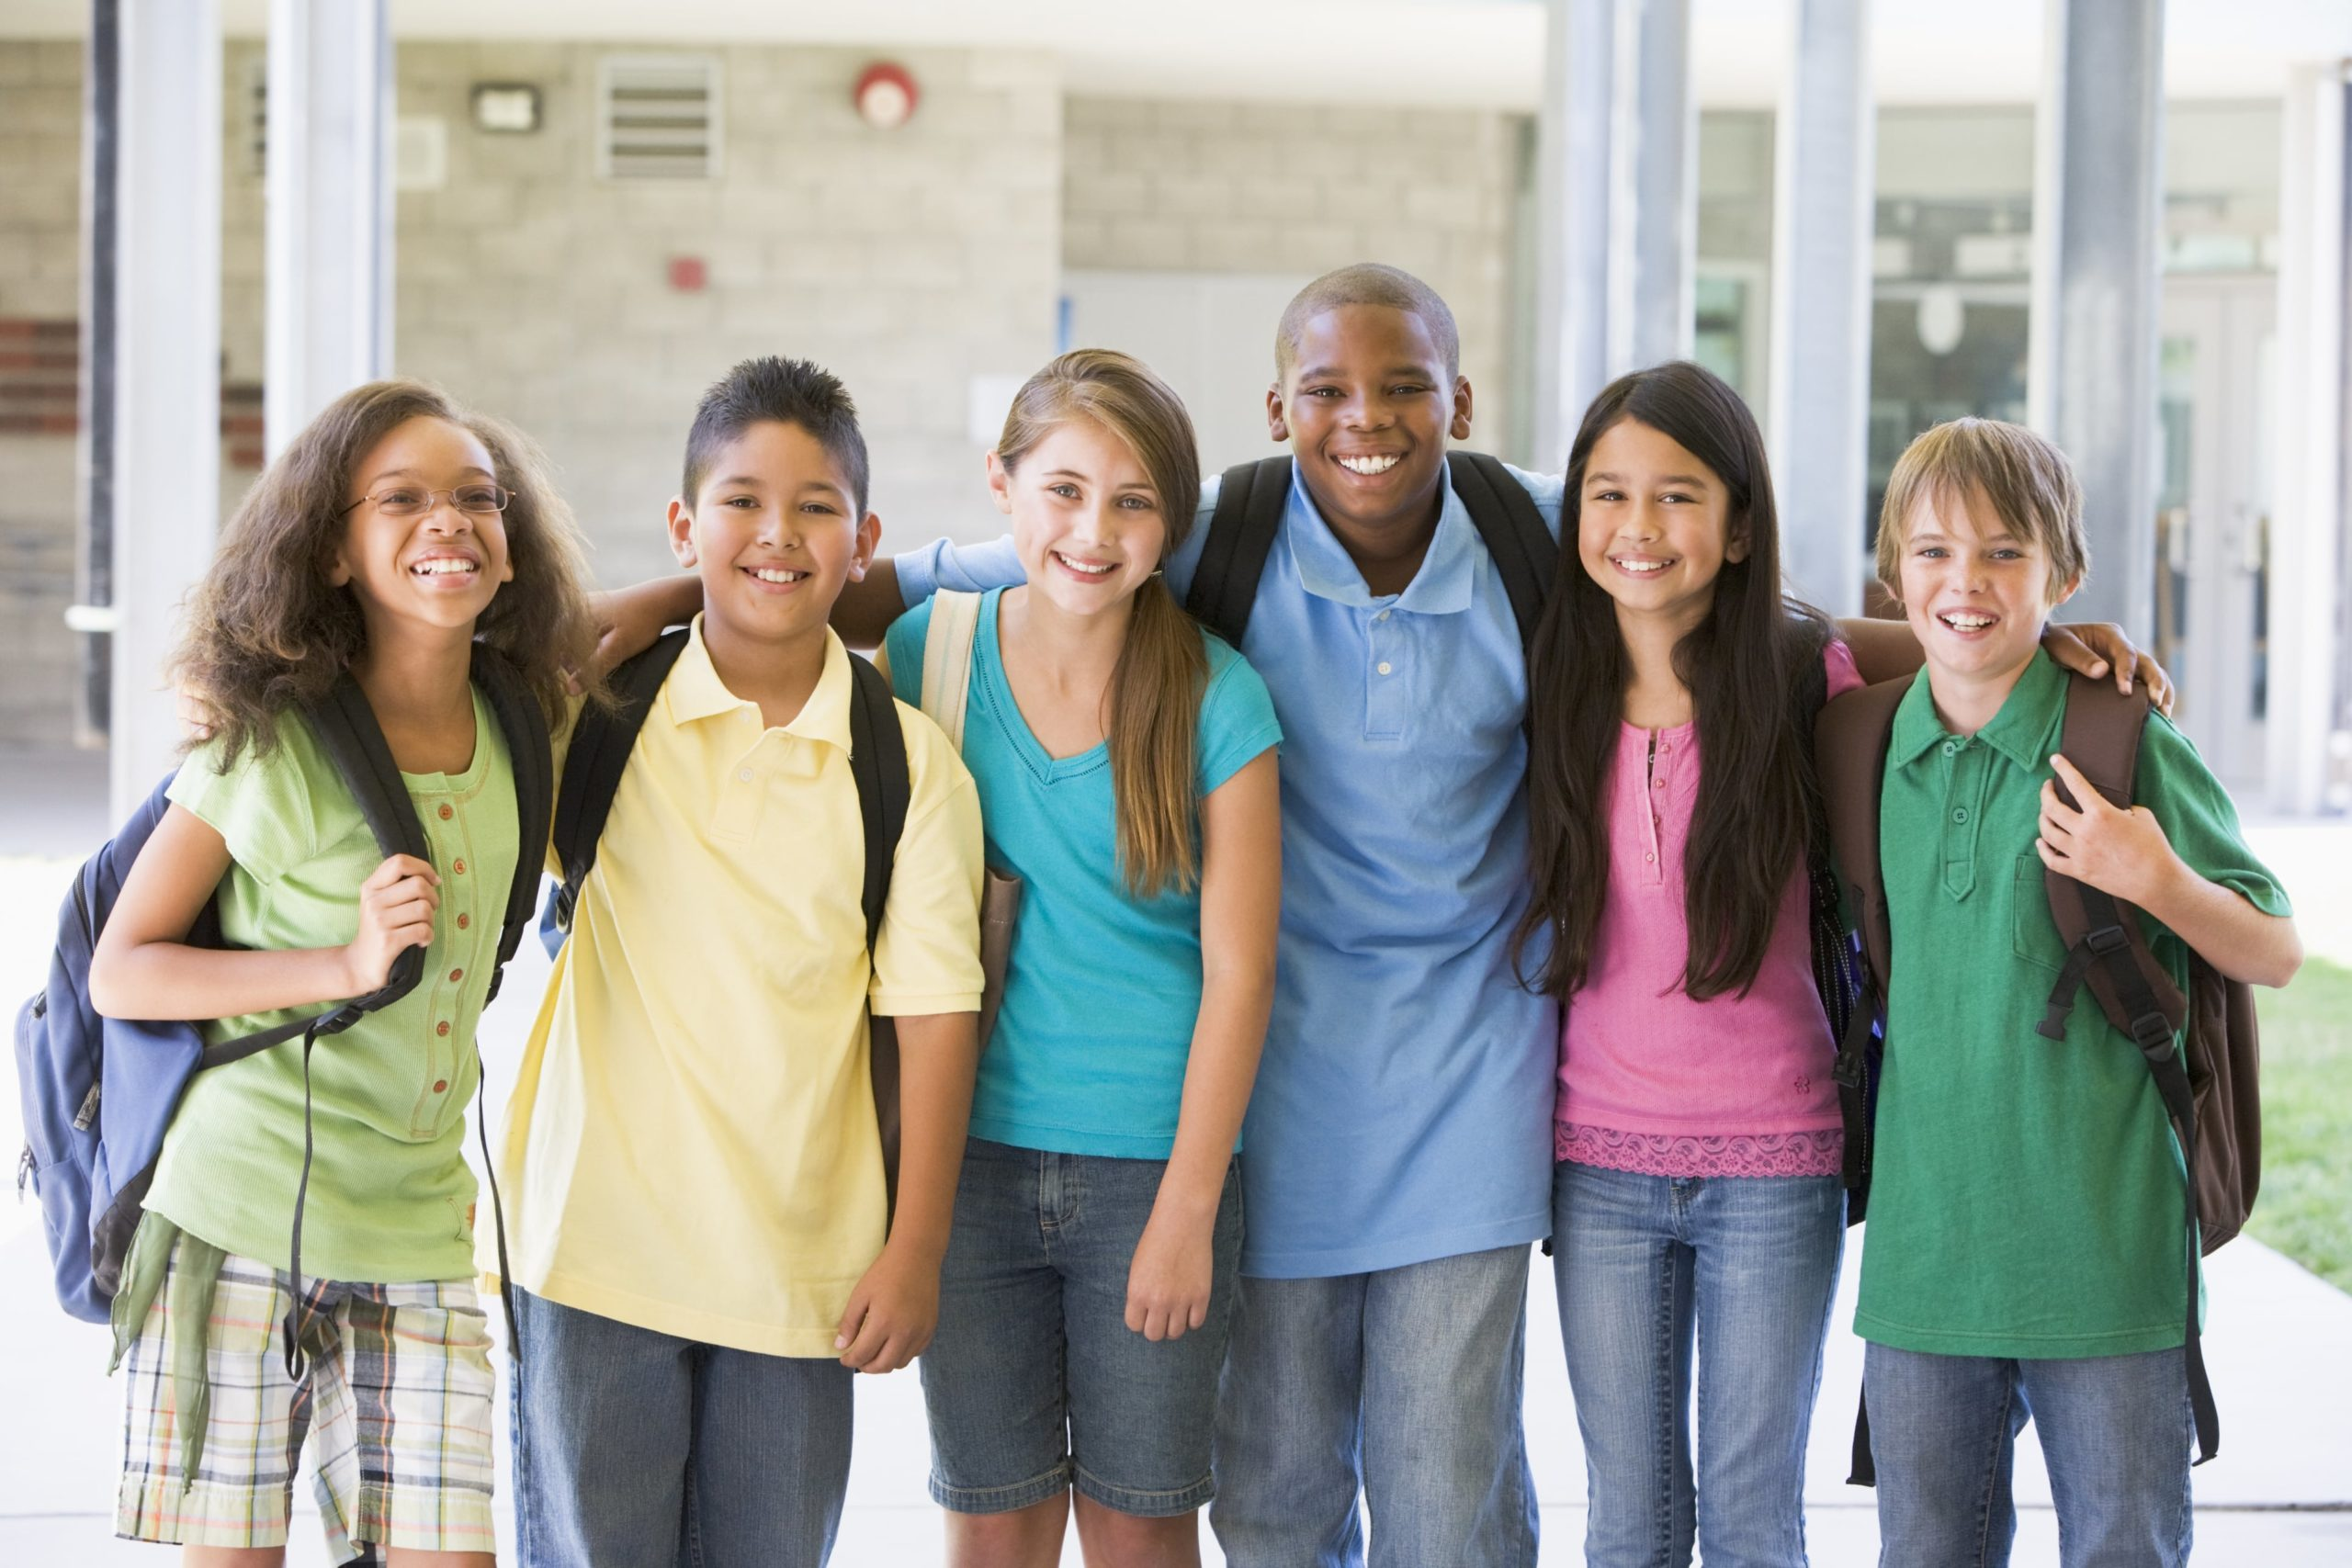 smiling diverse kids at school